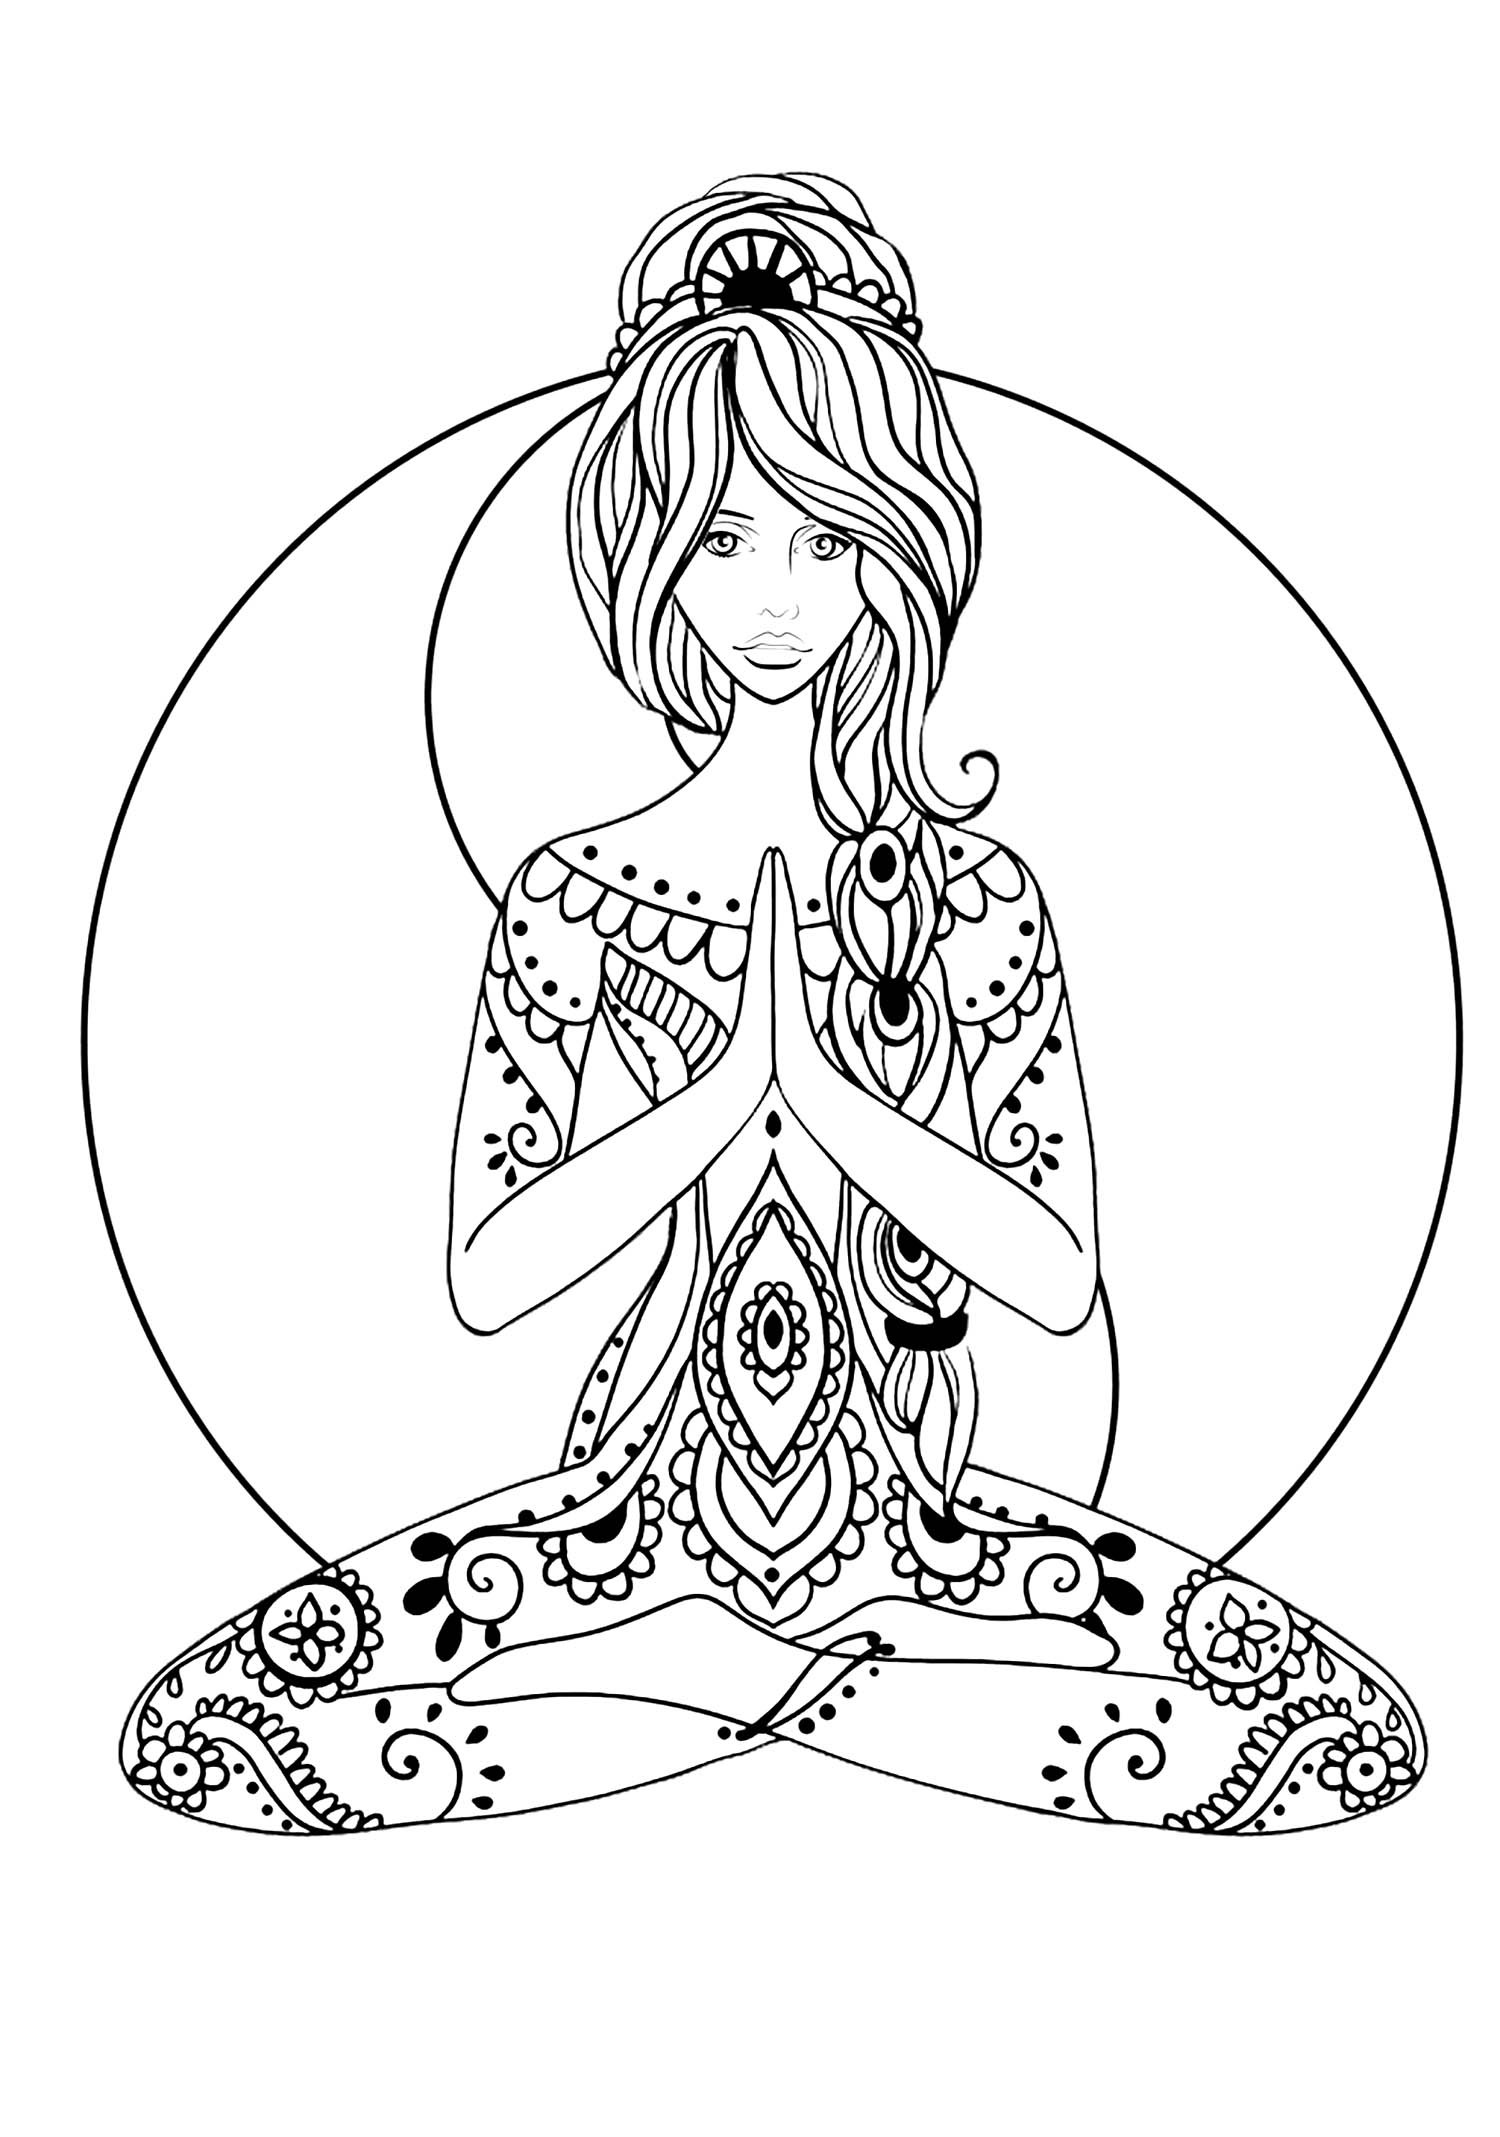 Yoga Coloring Pages  Yoga Anti stress Adult Coloring Pages